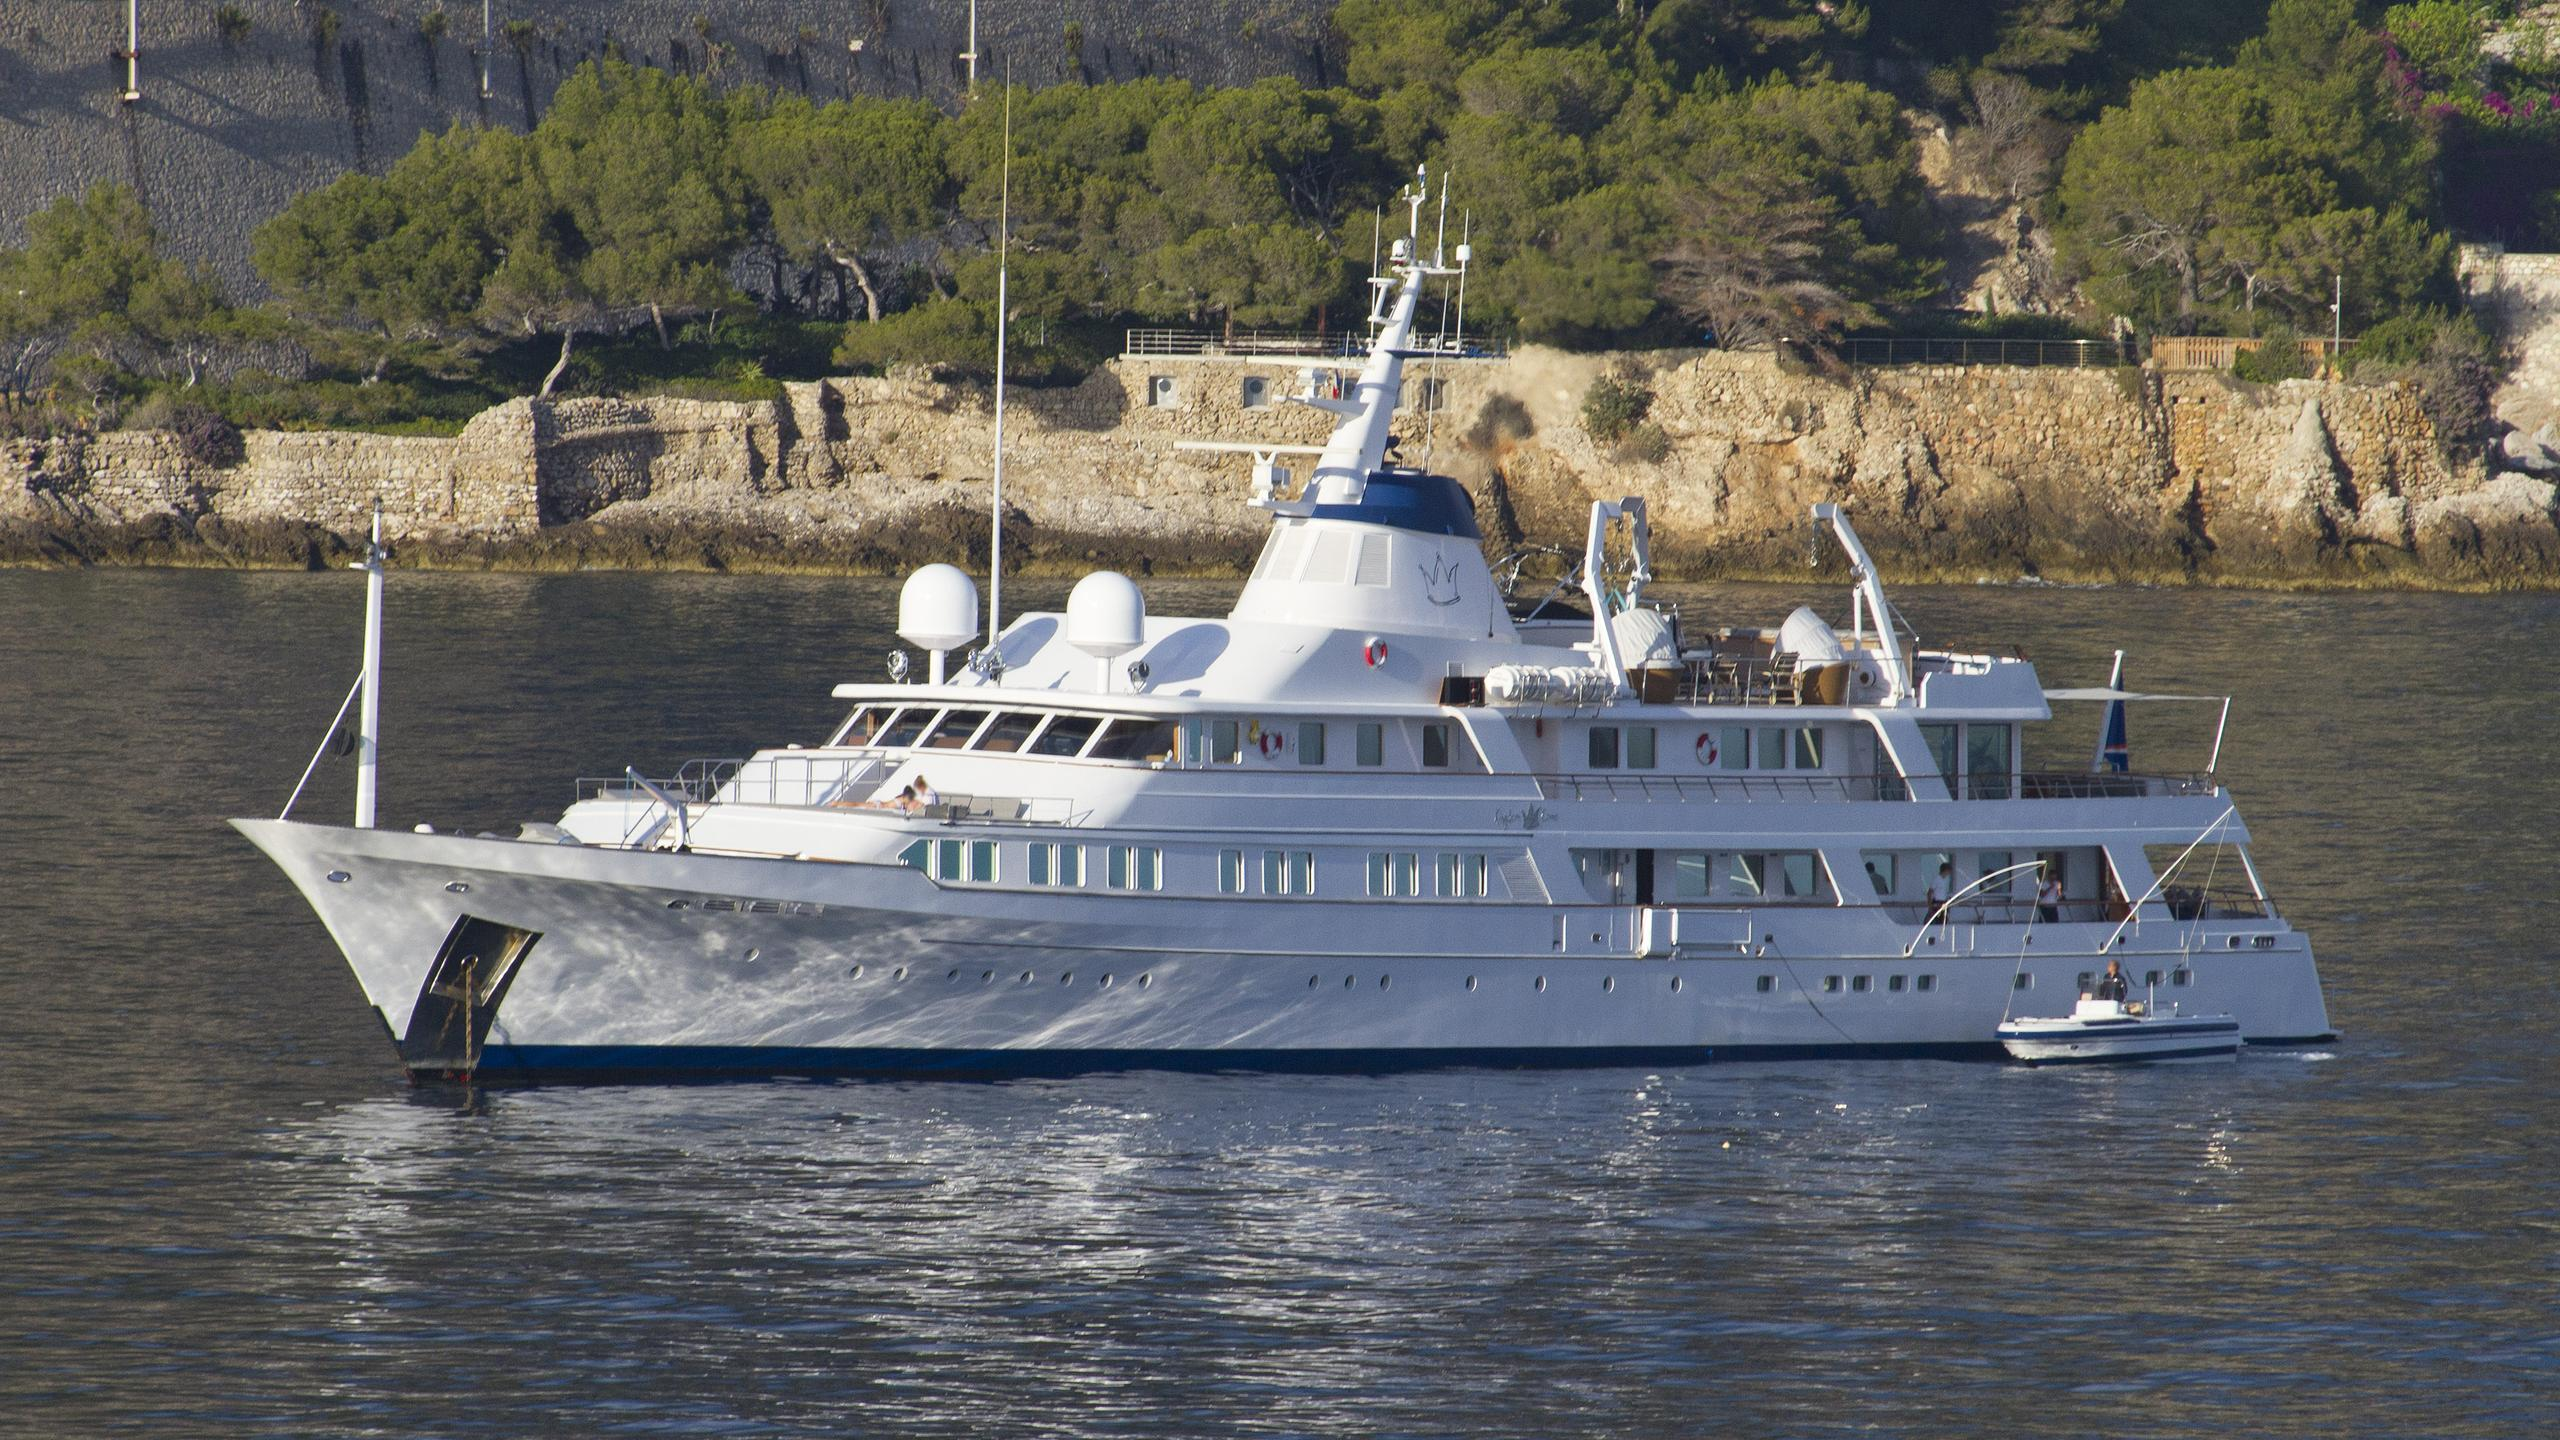 sanoo-kingdom-come-motor-yacht-feadship-1979-61m-half-profile